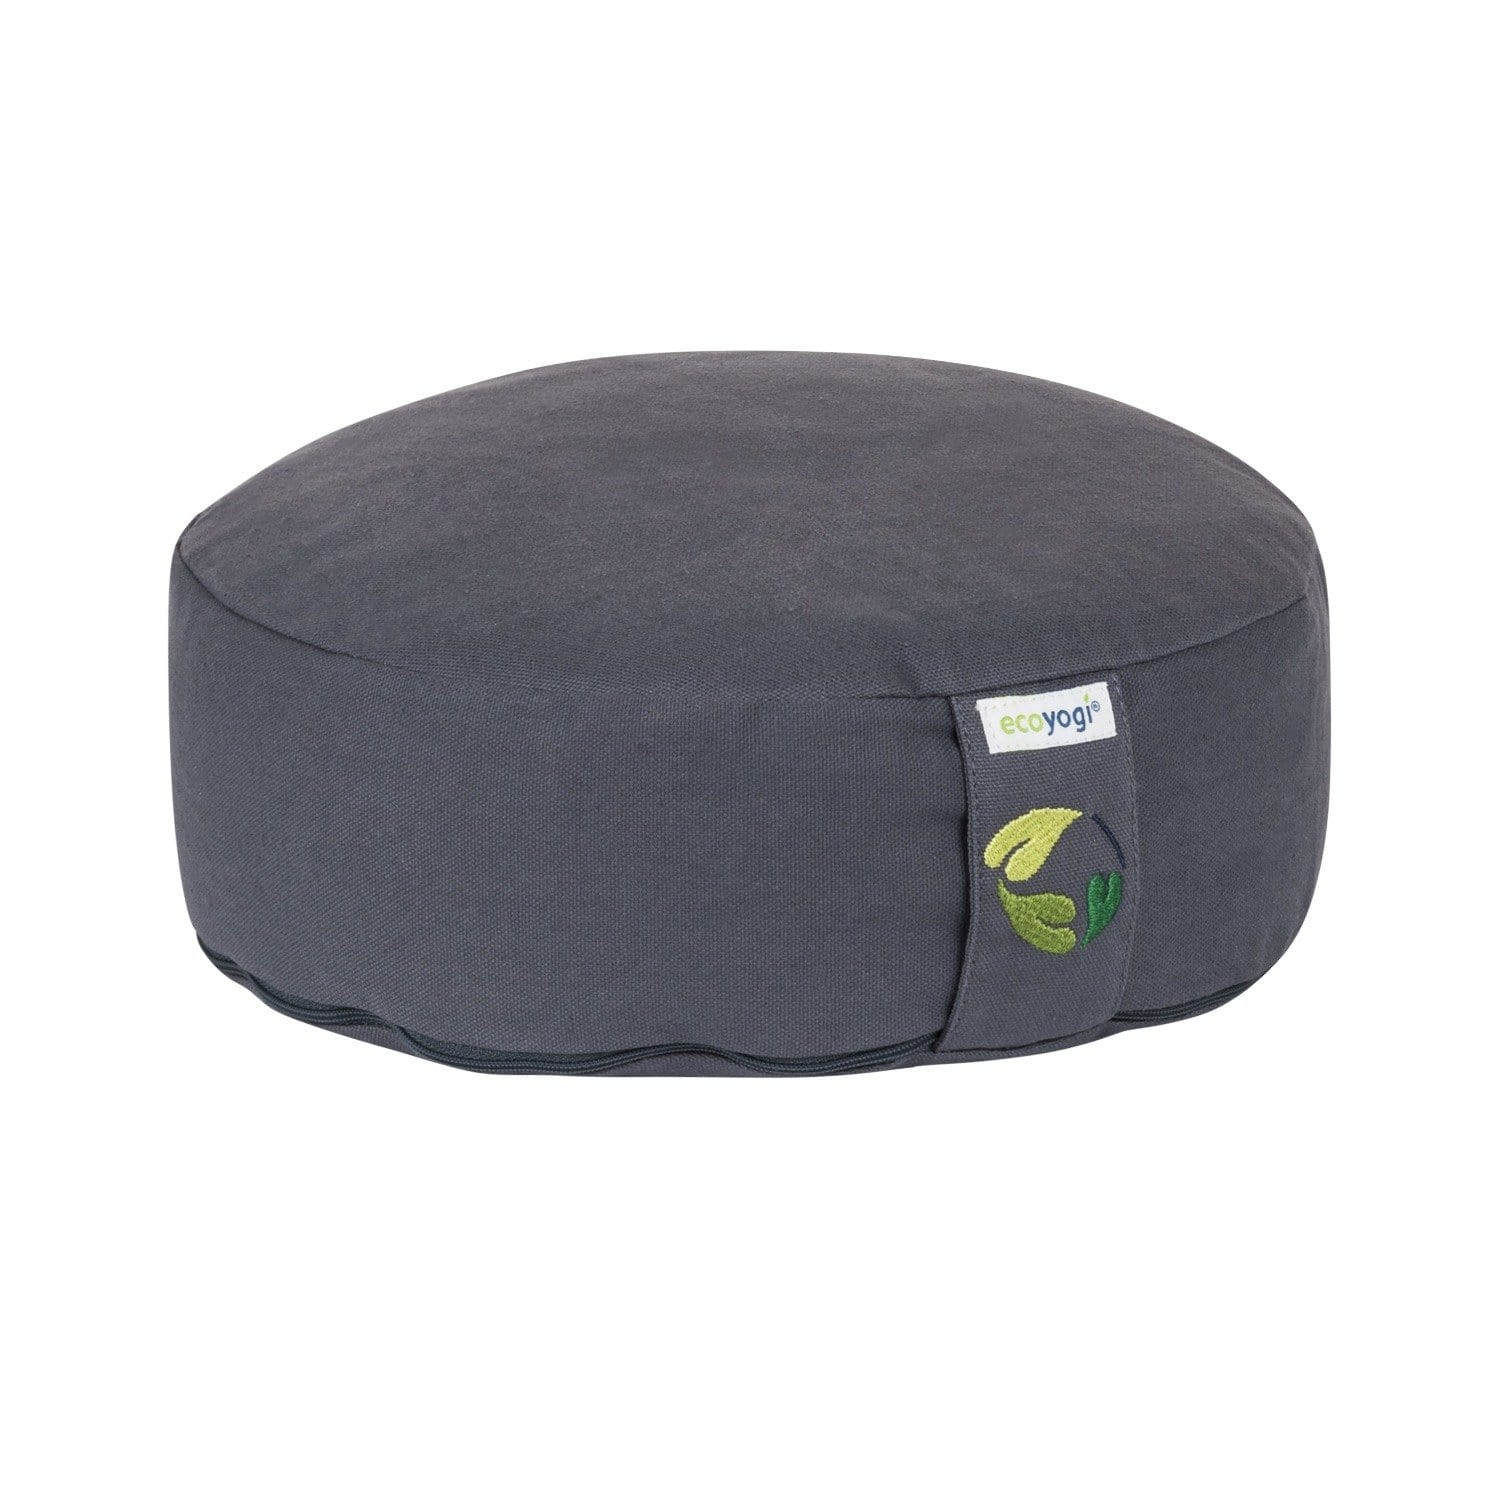 sustainable gifts Ecoyogi Grey Organic cotton meditation cushion low - grey